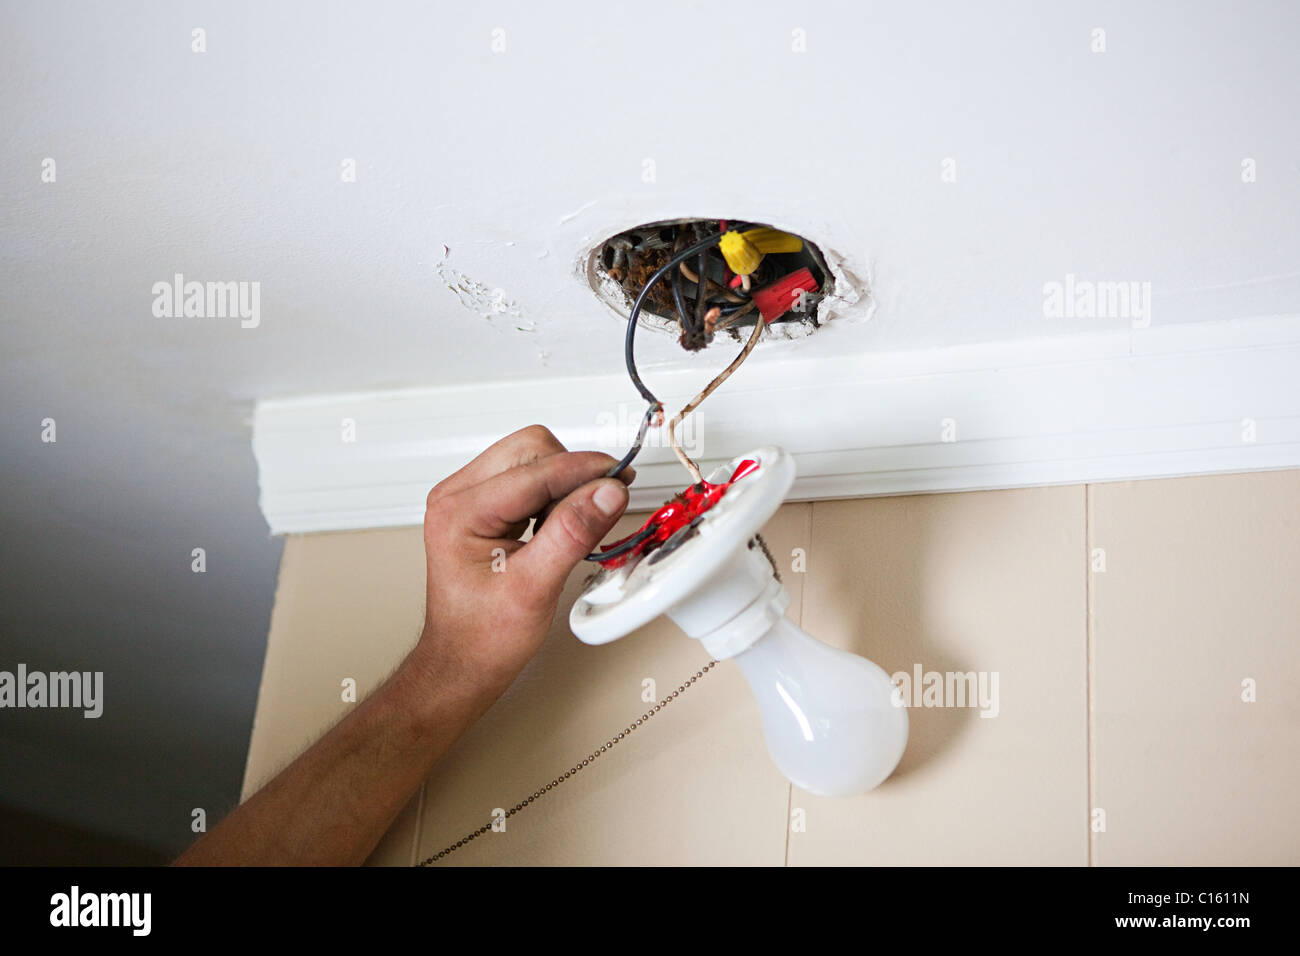 hight resolution of electrician fixing lightbulb wiring stock image